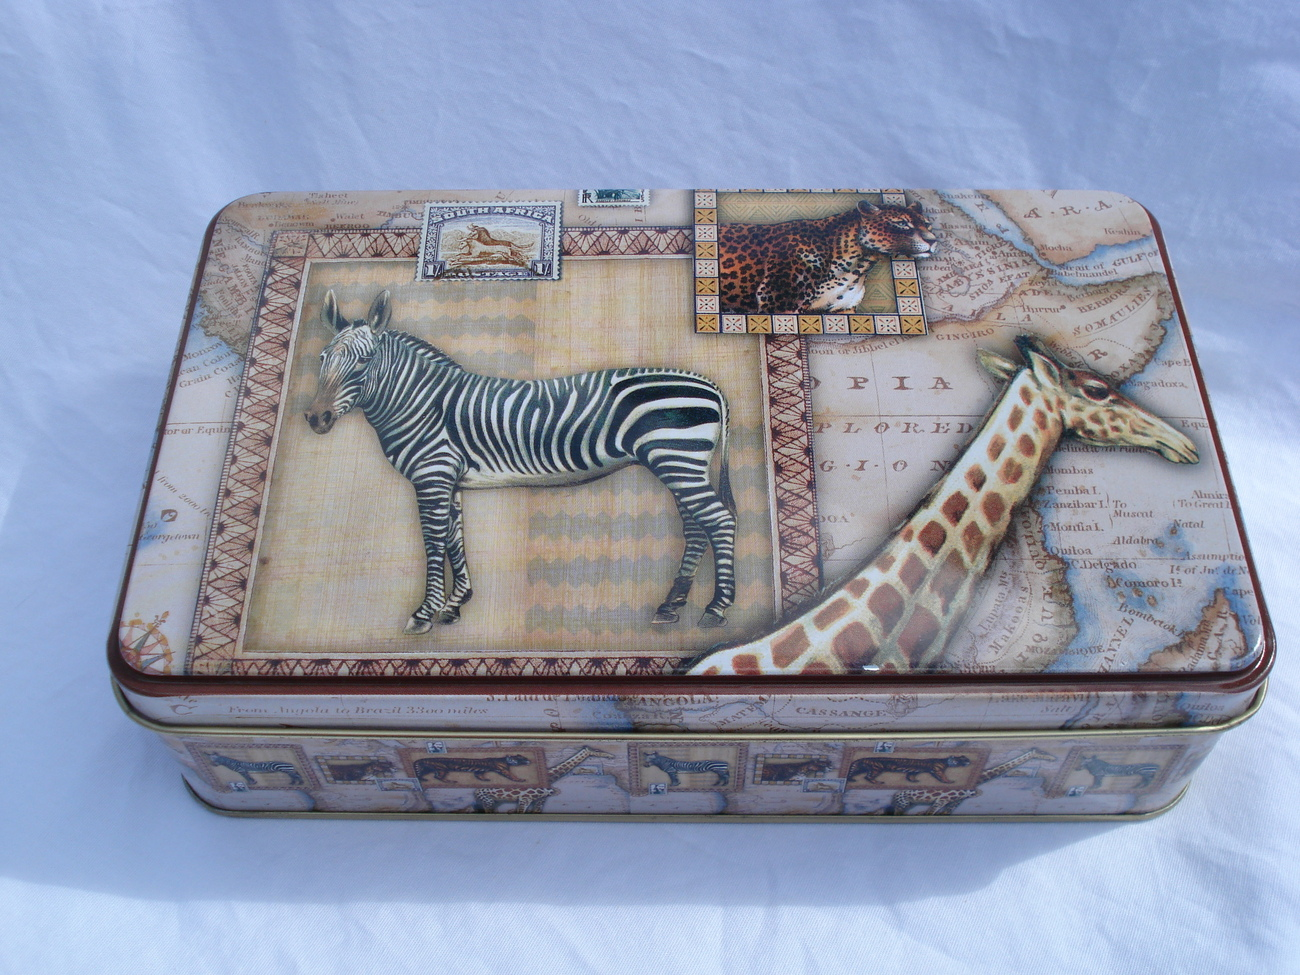 GIRAFFE AND ZEBRA METAL BOX